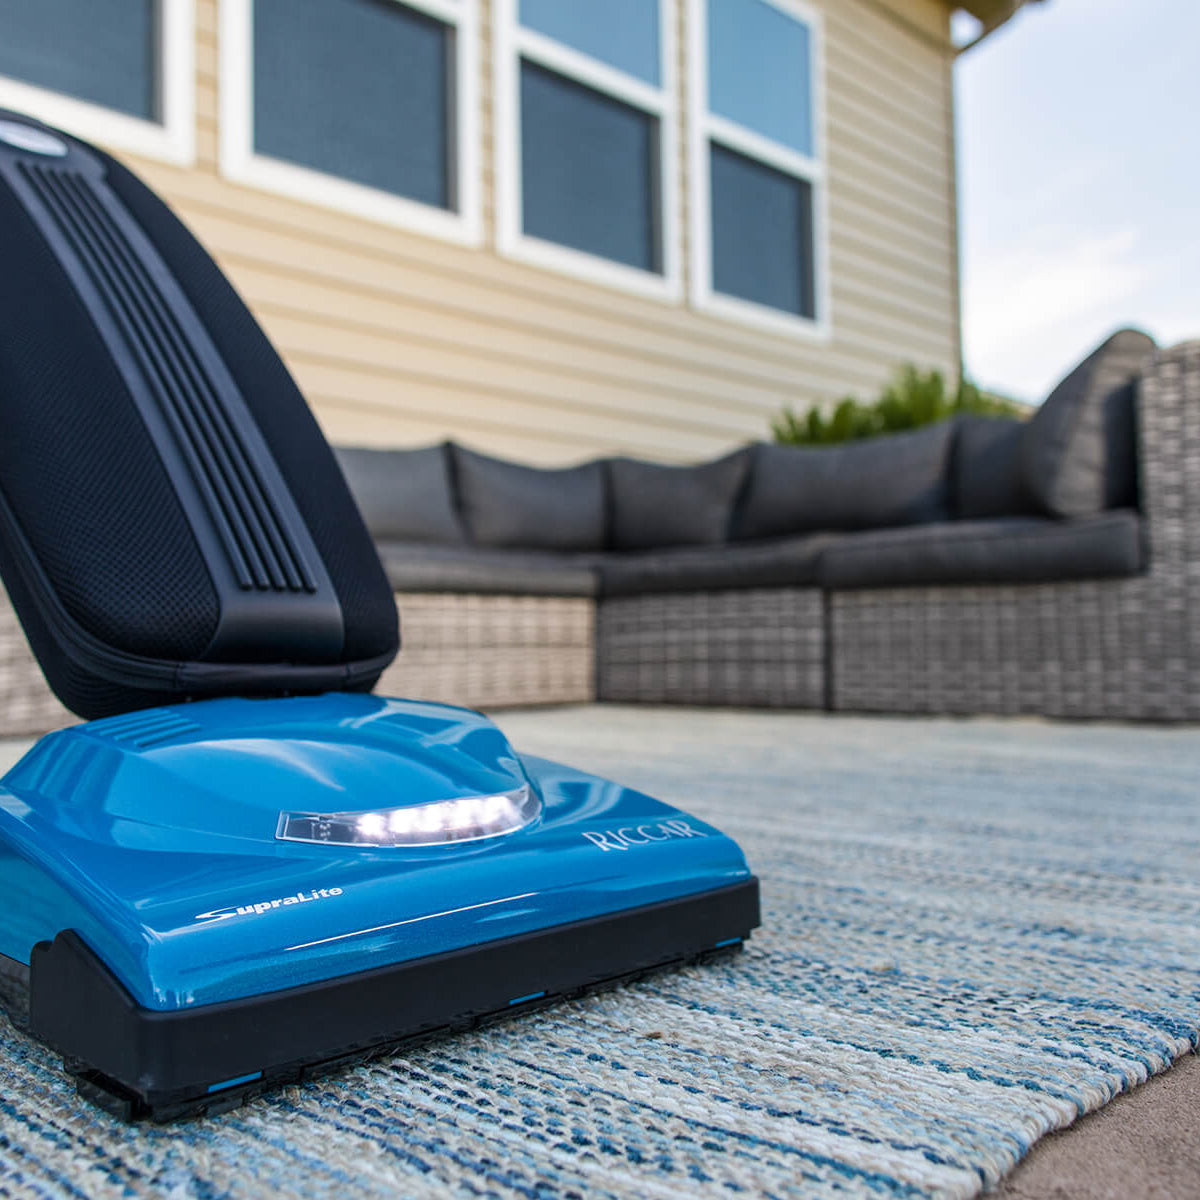 Riccar Vacuum Cleaners Capital Vacuum Floor-Care World 1666 N Market Dr Raleigh NC 27609 (919) 878-8530 209 E Chatham St Cary NC 27511 www.cleanhomshop.com